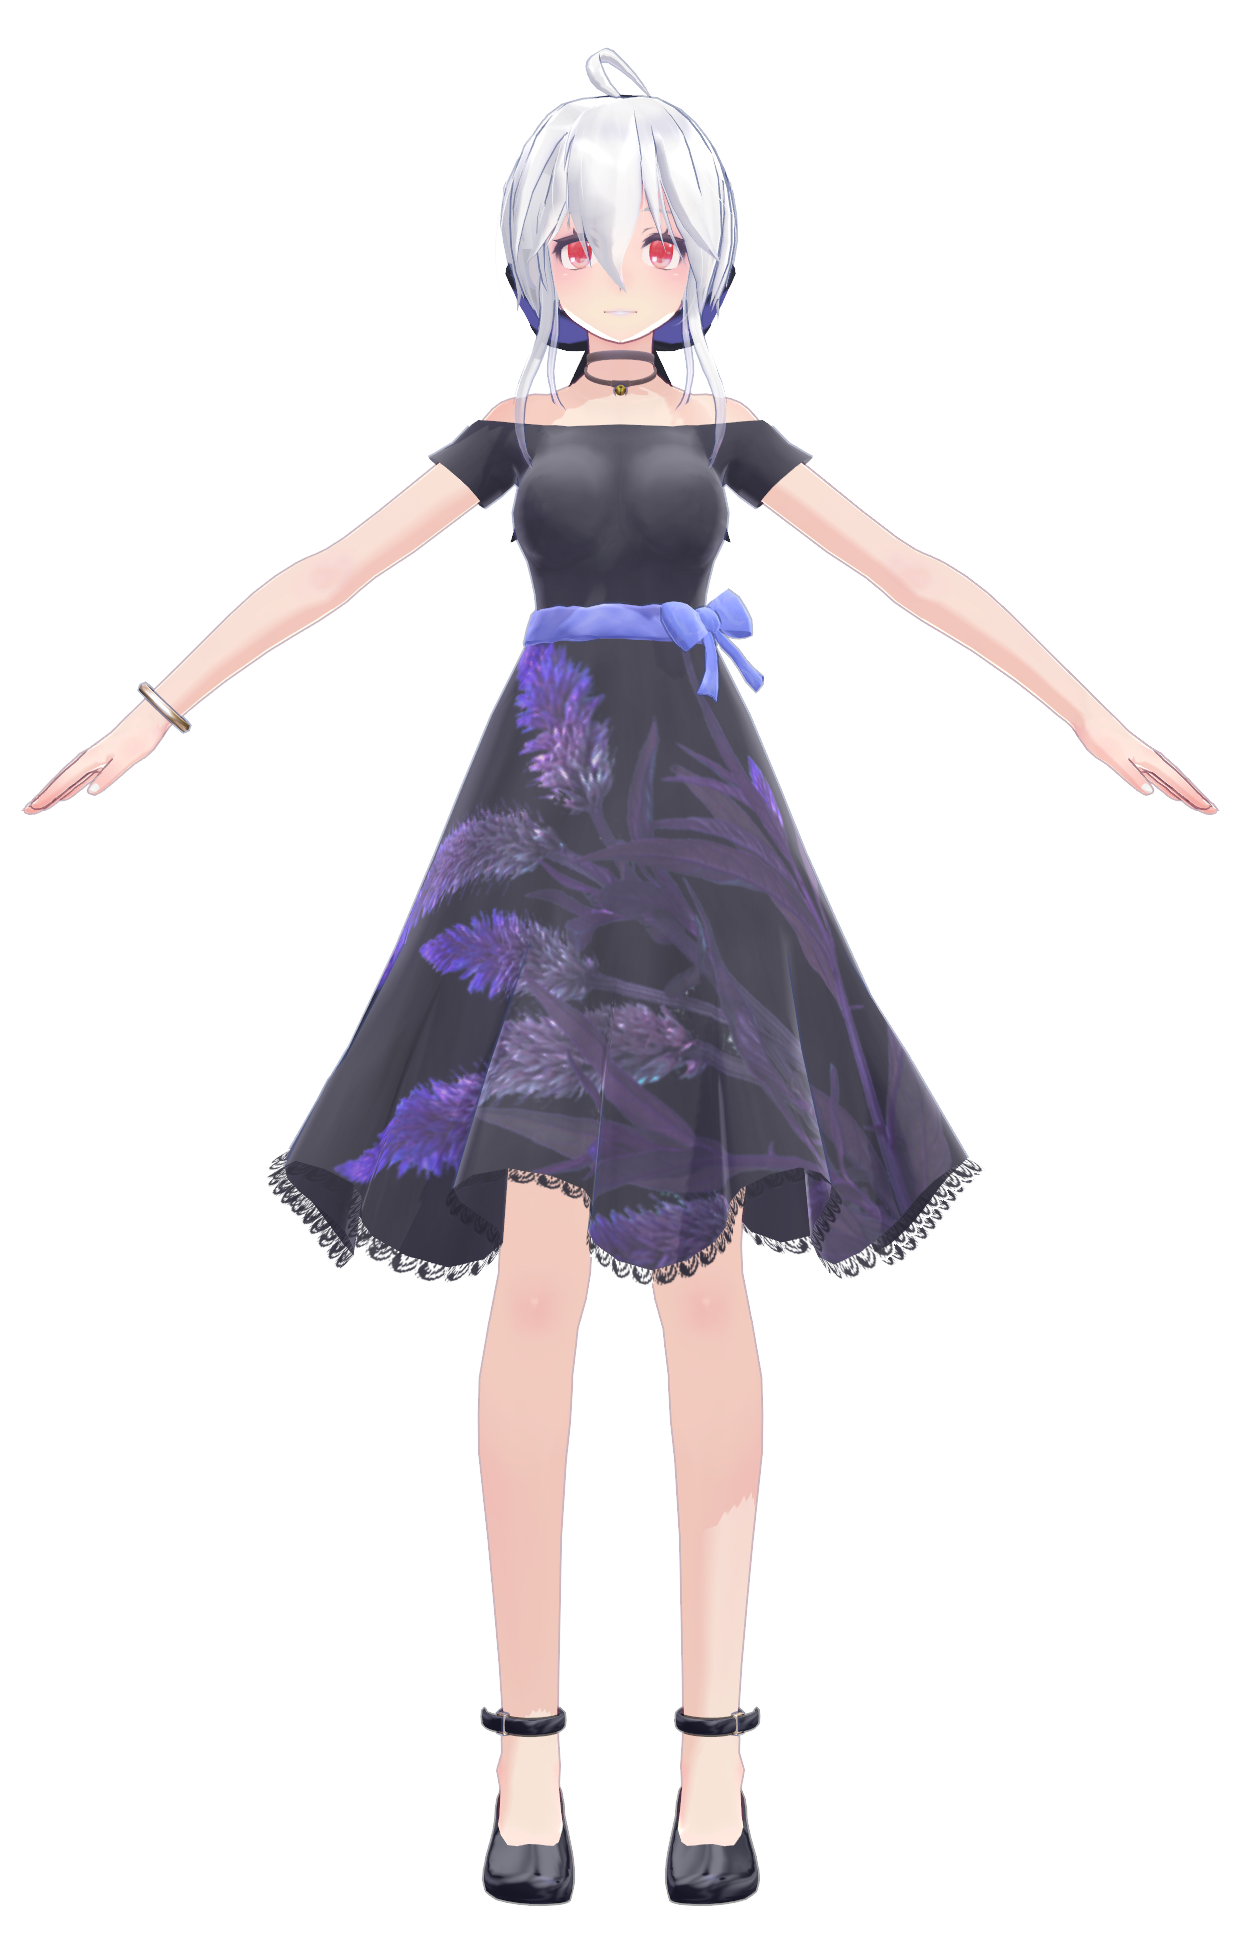 Haku Yowane Append One piece dress Tda Edit (Coa